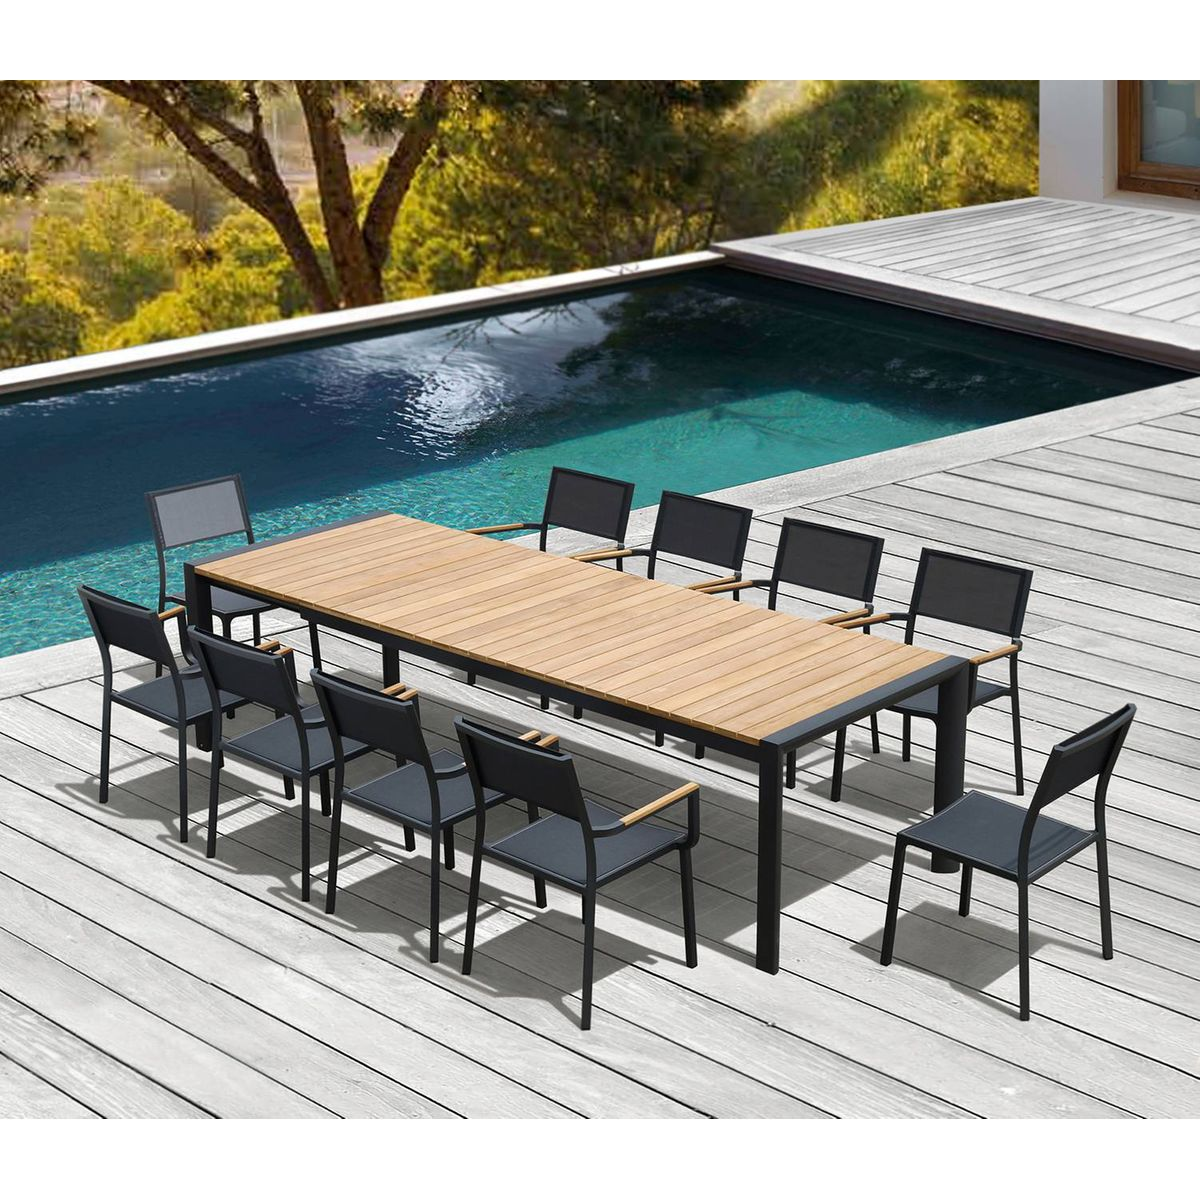 Mobilier outdoor Pebble collection